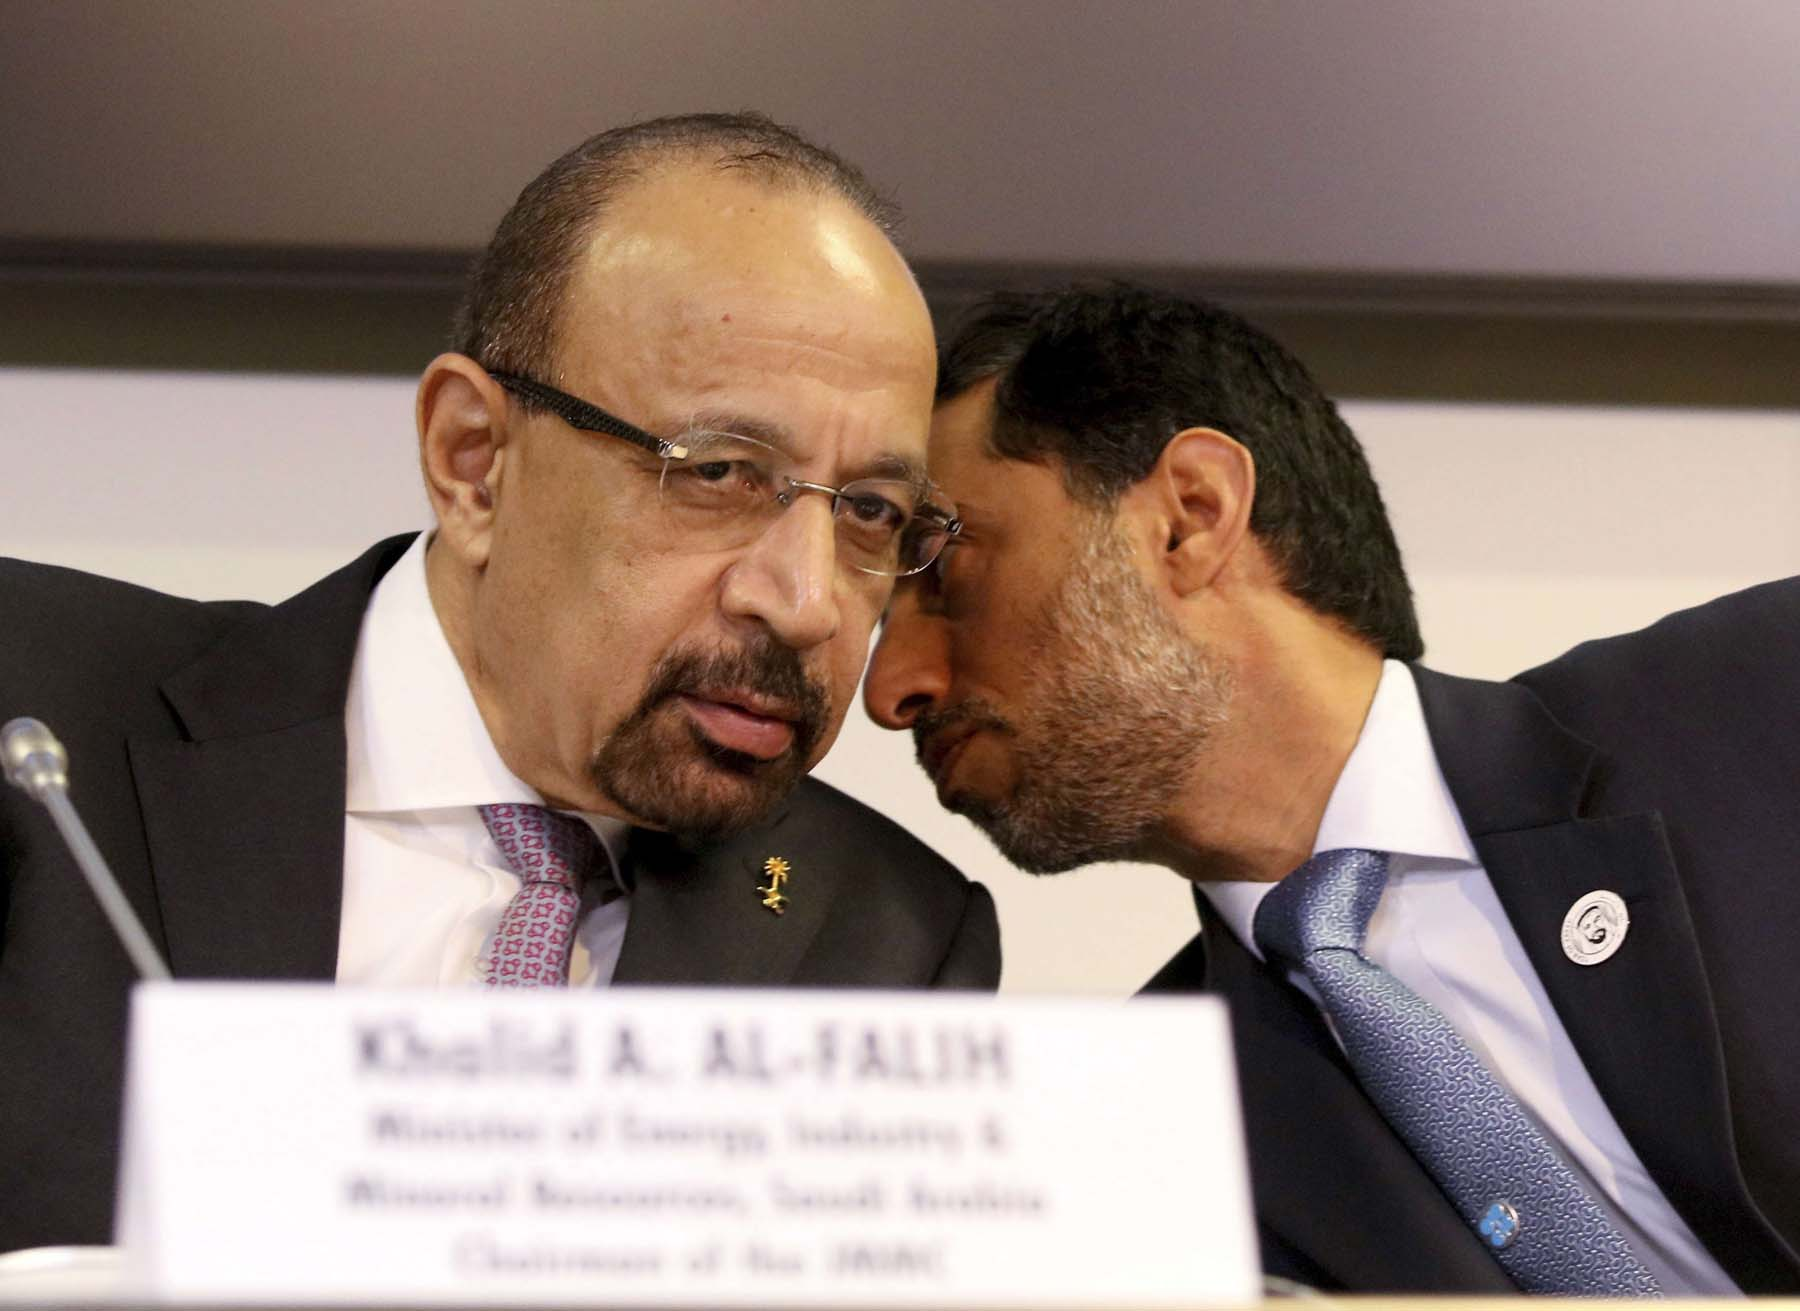 Saudi Oil Minister Khalid al-Falih (L) and Emirati Minister of Energy Suhail Mohamed Al Mazrouei during a news conference after OPEC meeting in Vienna, December 7. (AP)